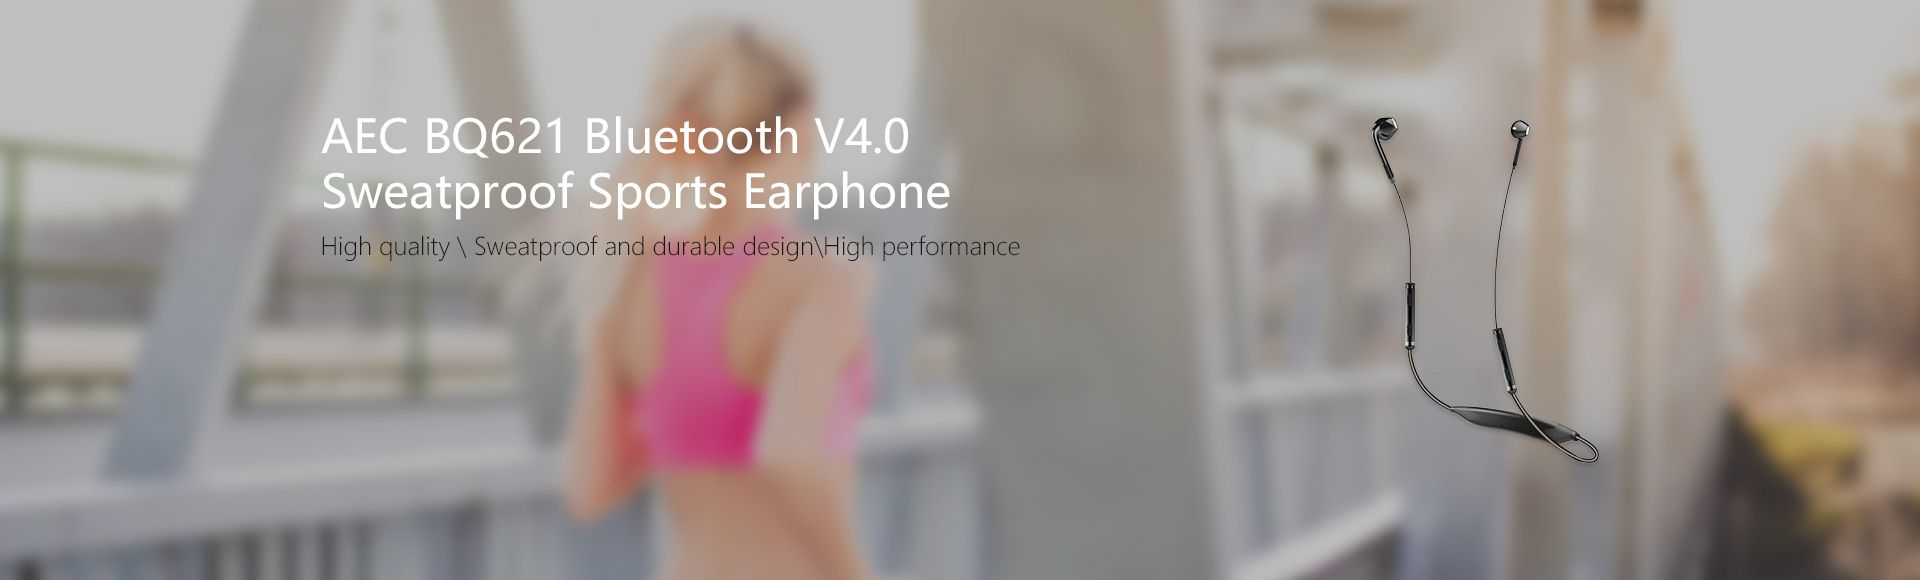 AEC BQ621 Sports Earphone -  Bluetooth V4.1 Sweatproof with NFC Function Fits for Music Mobile Phone calls